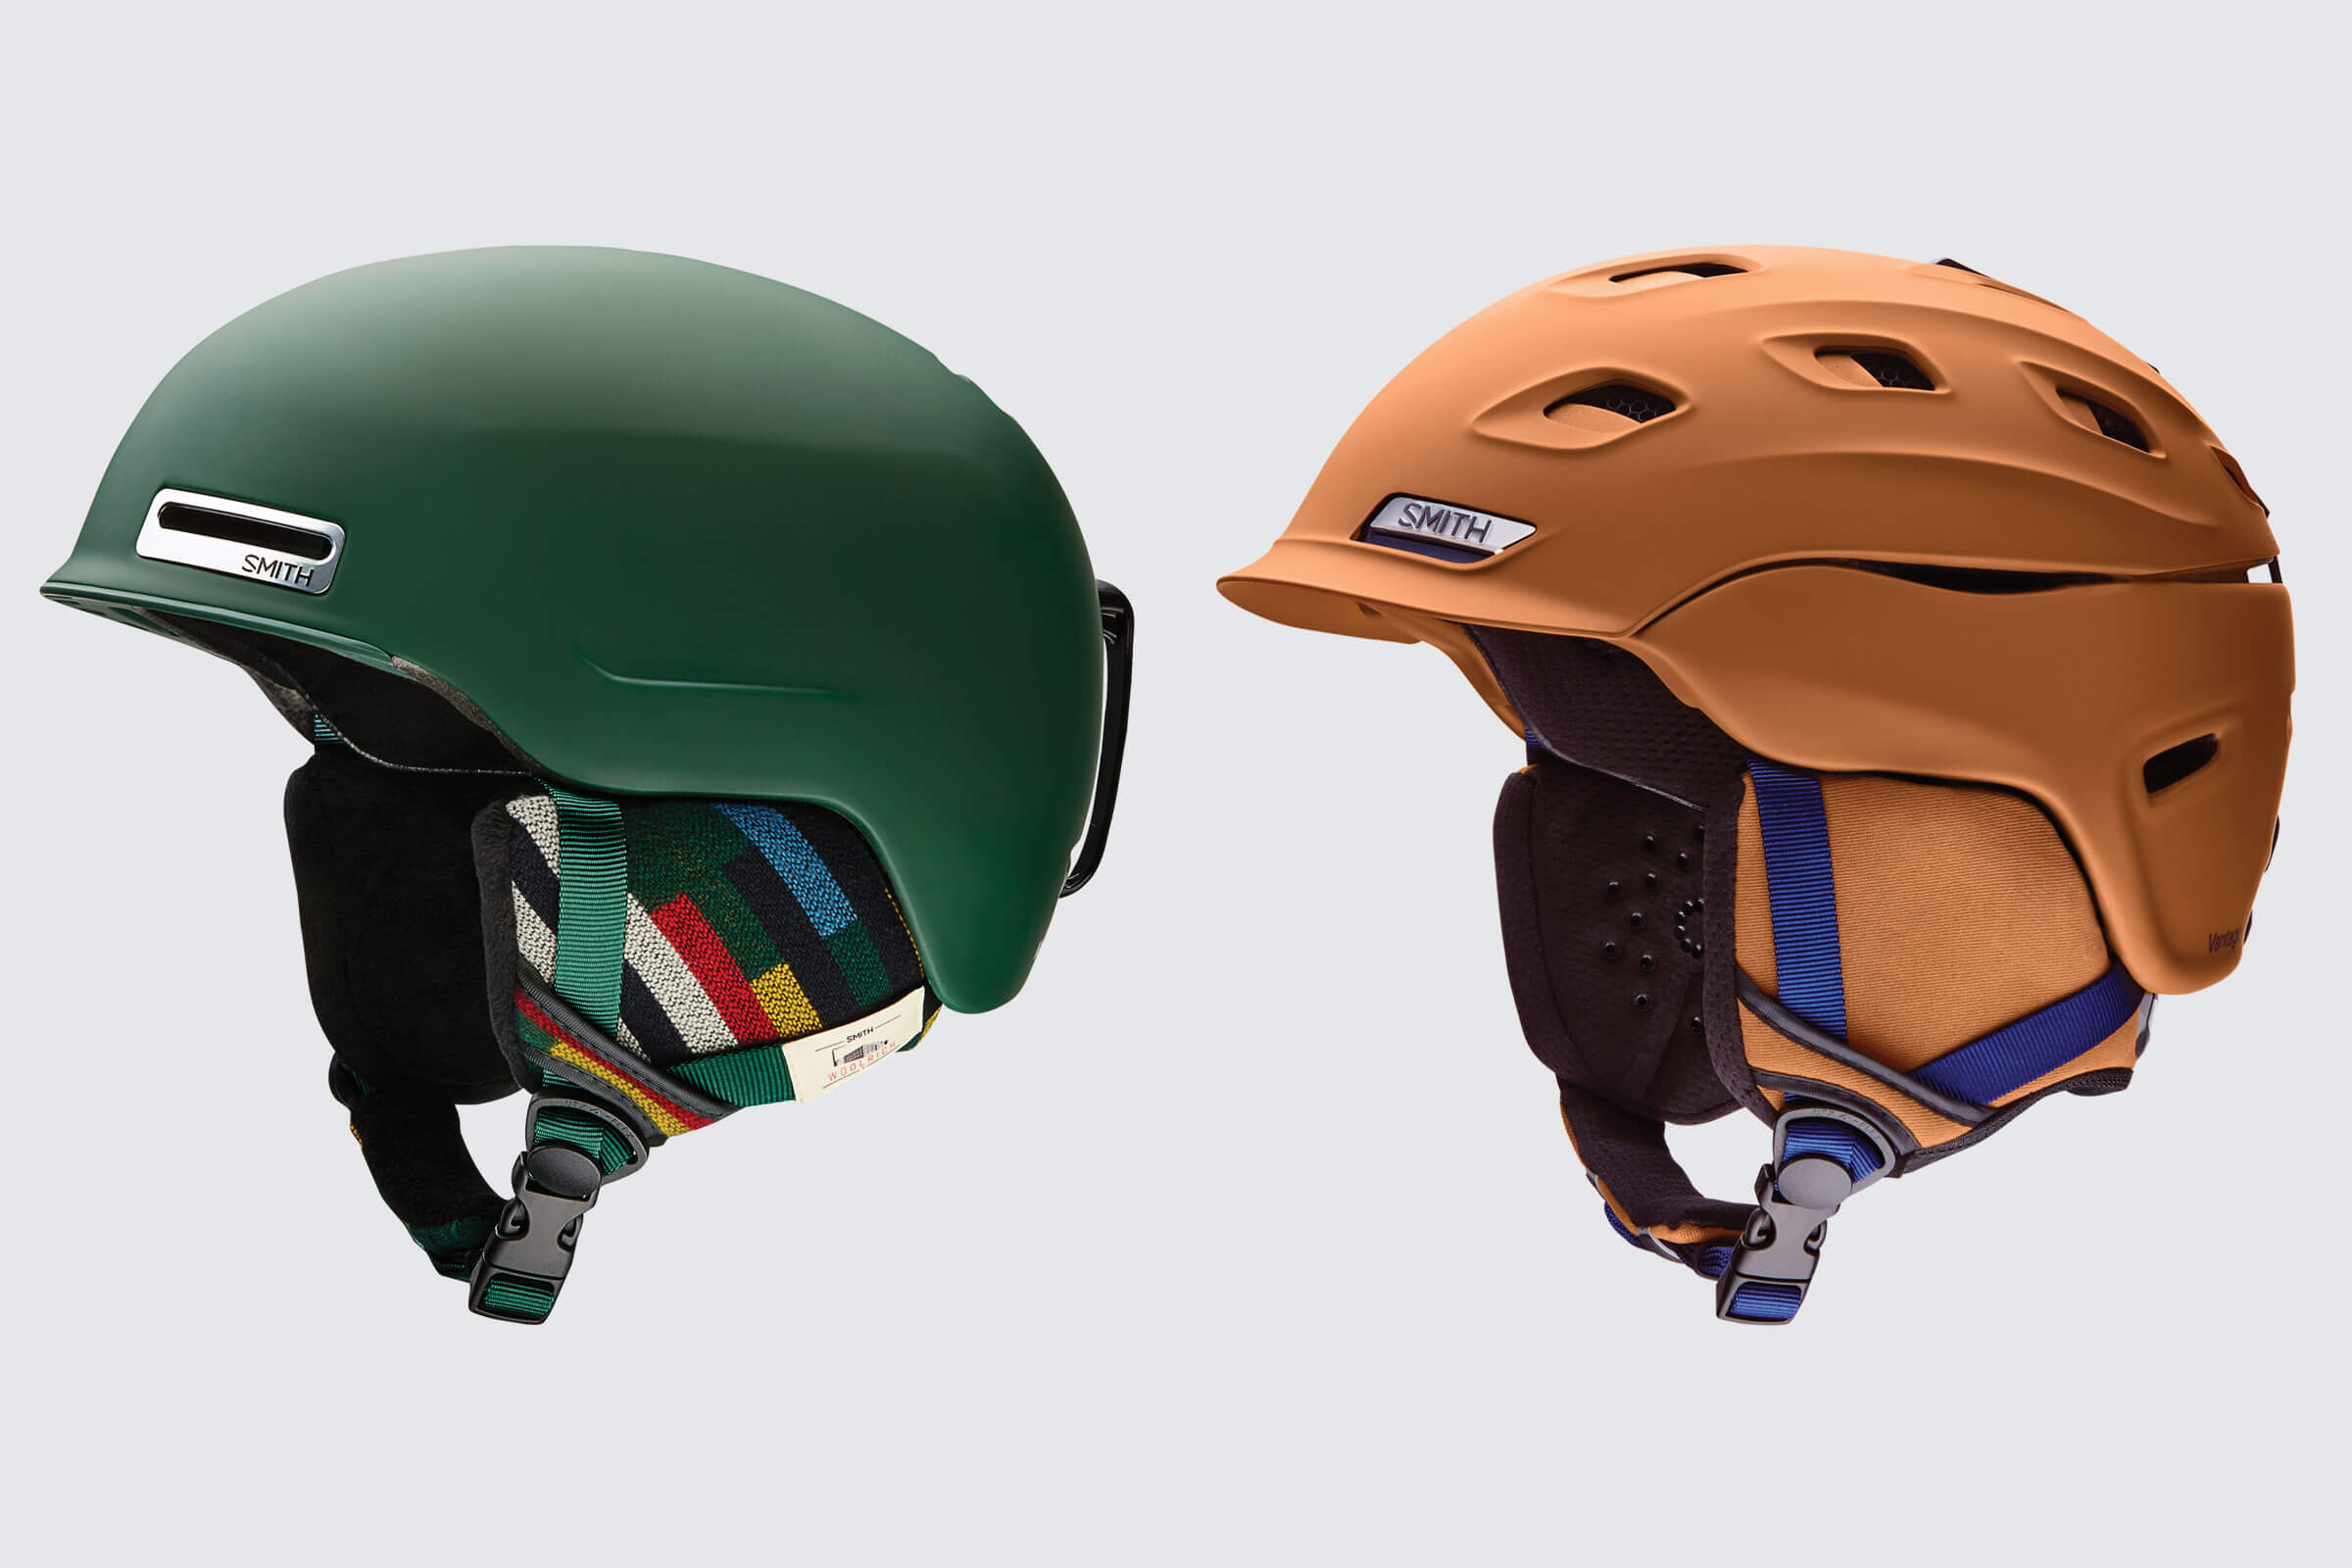 SMITH_HELMETS_WOOLRICH_CARGO